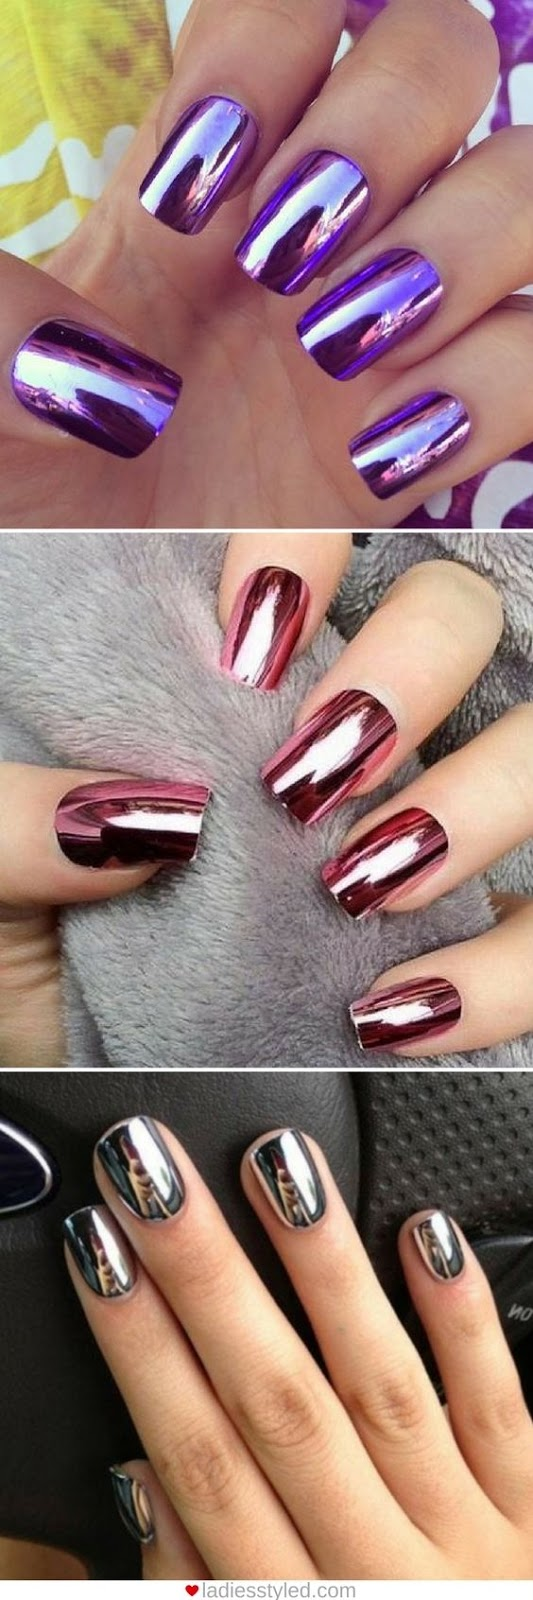 Beautiful Nail Art Designs To Copy Right Now